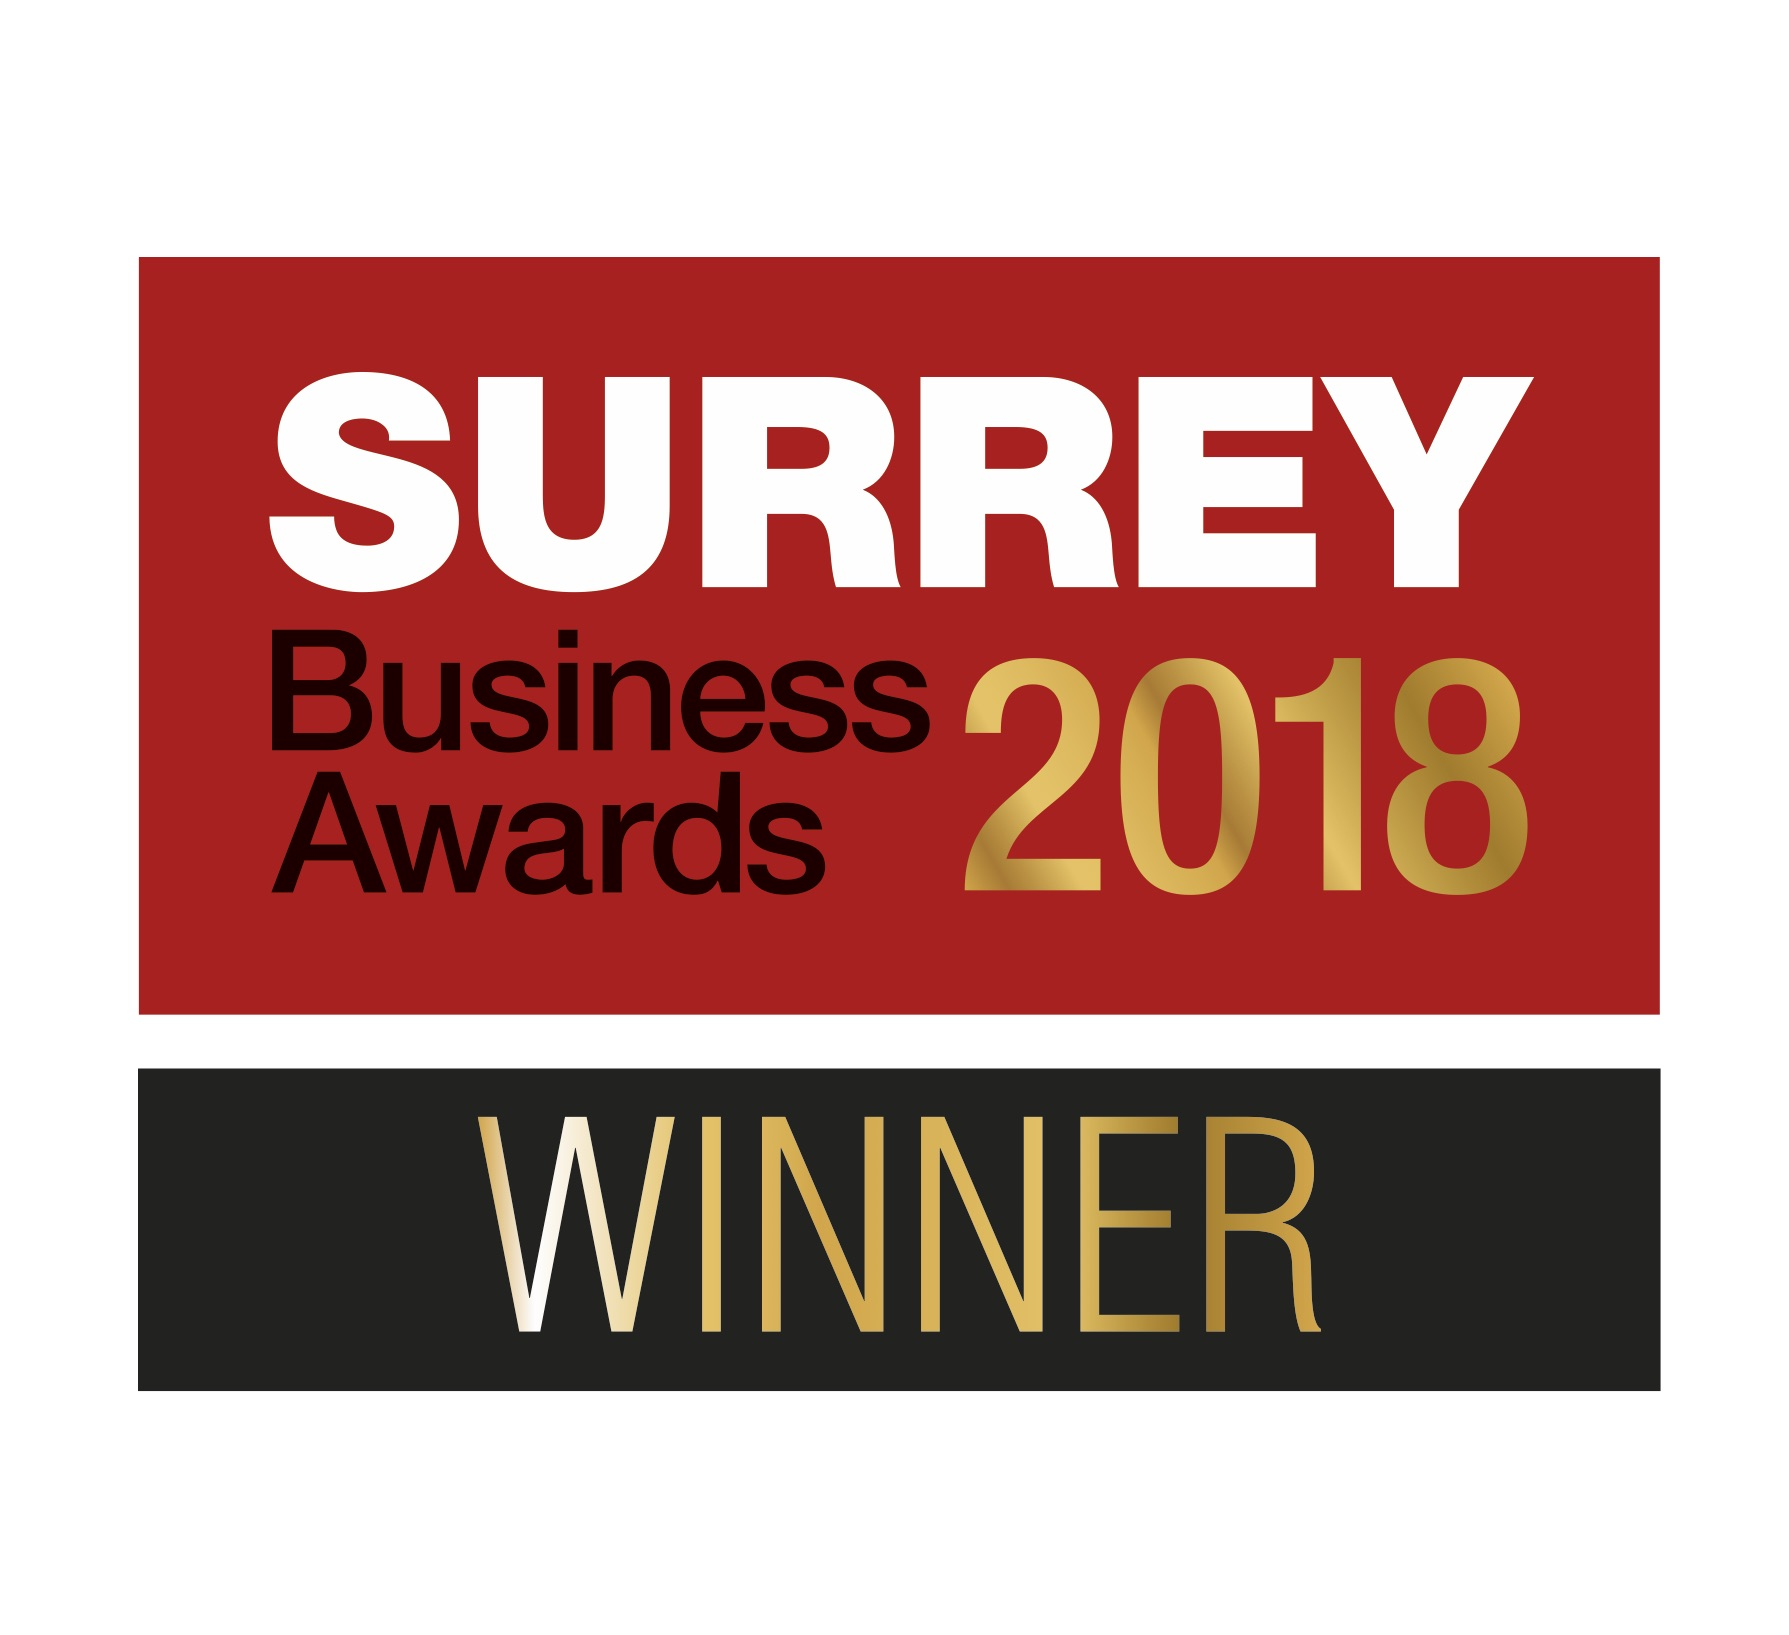 Surrey Business Awards 2018 Winner